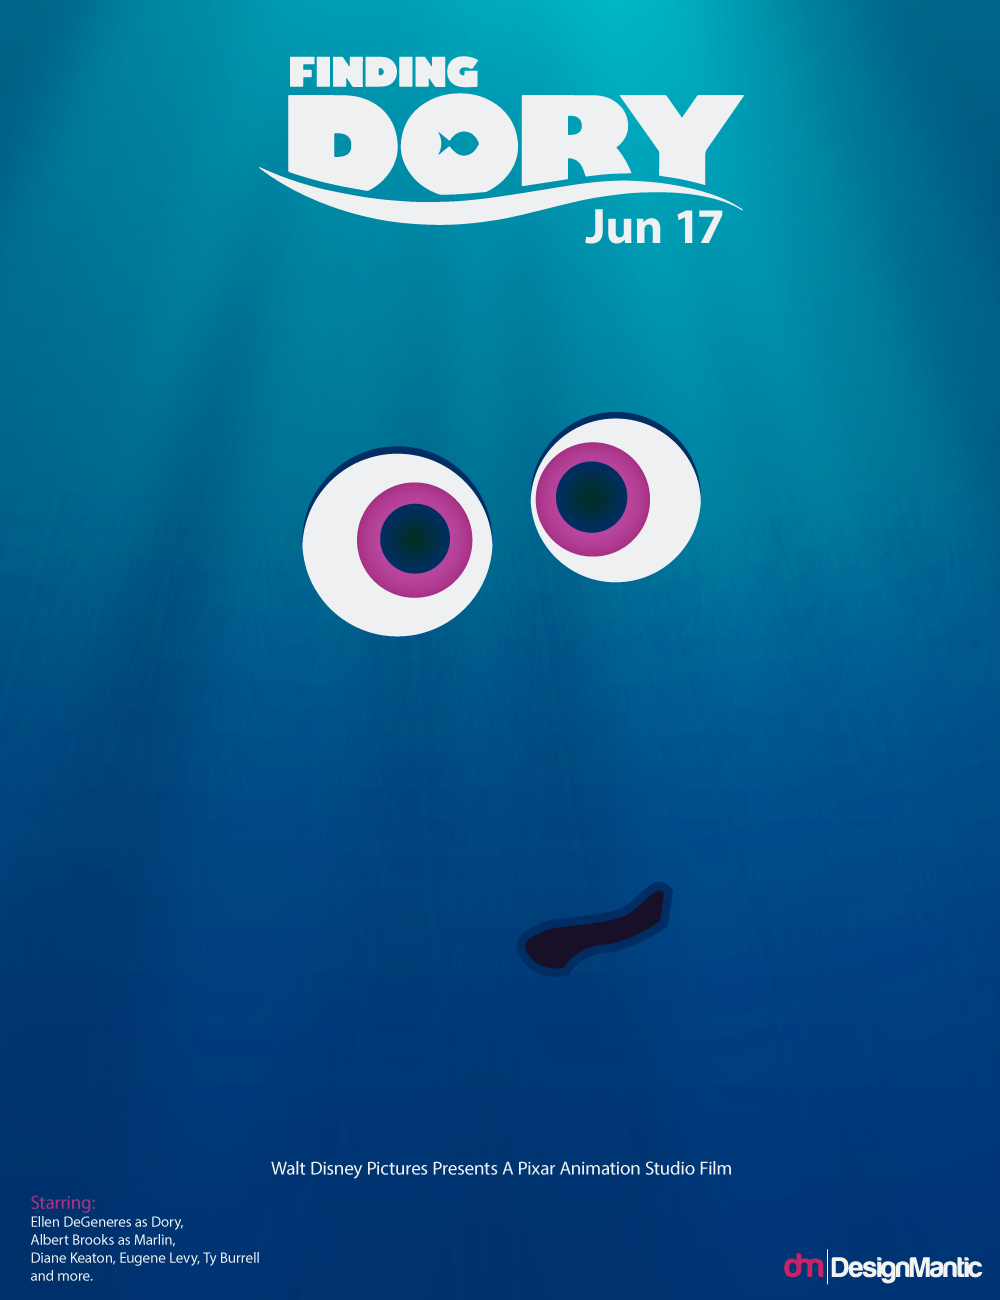 Poster design 2016 - Finding Dory